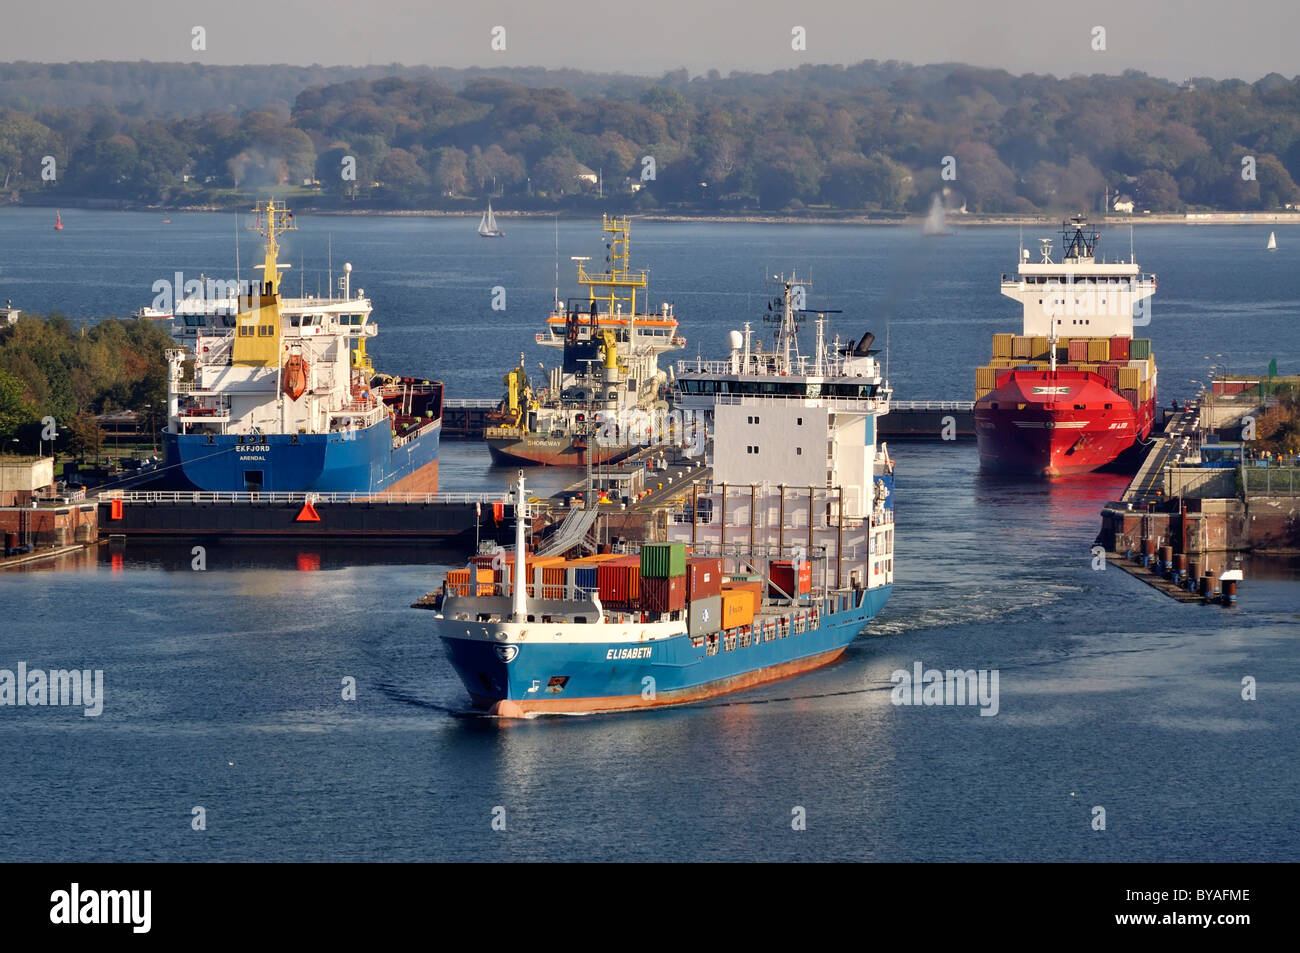 Shipping container ships at Holtenau lock, Kiel Canal, Kiel, Schleswig-Holstein, Germany, Europe - Stock Image